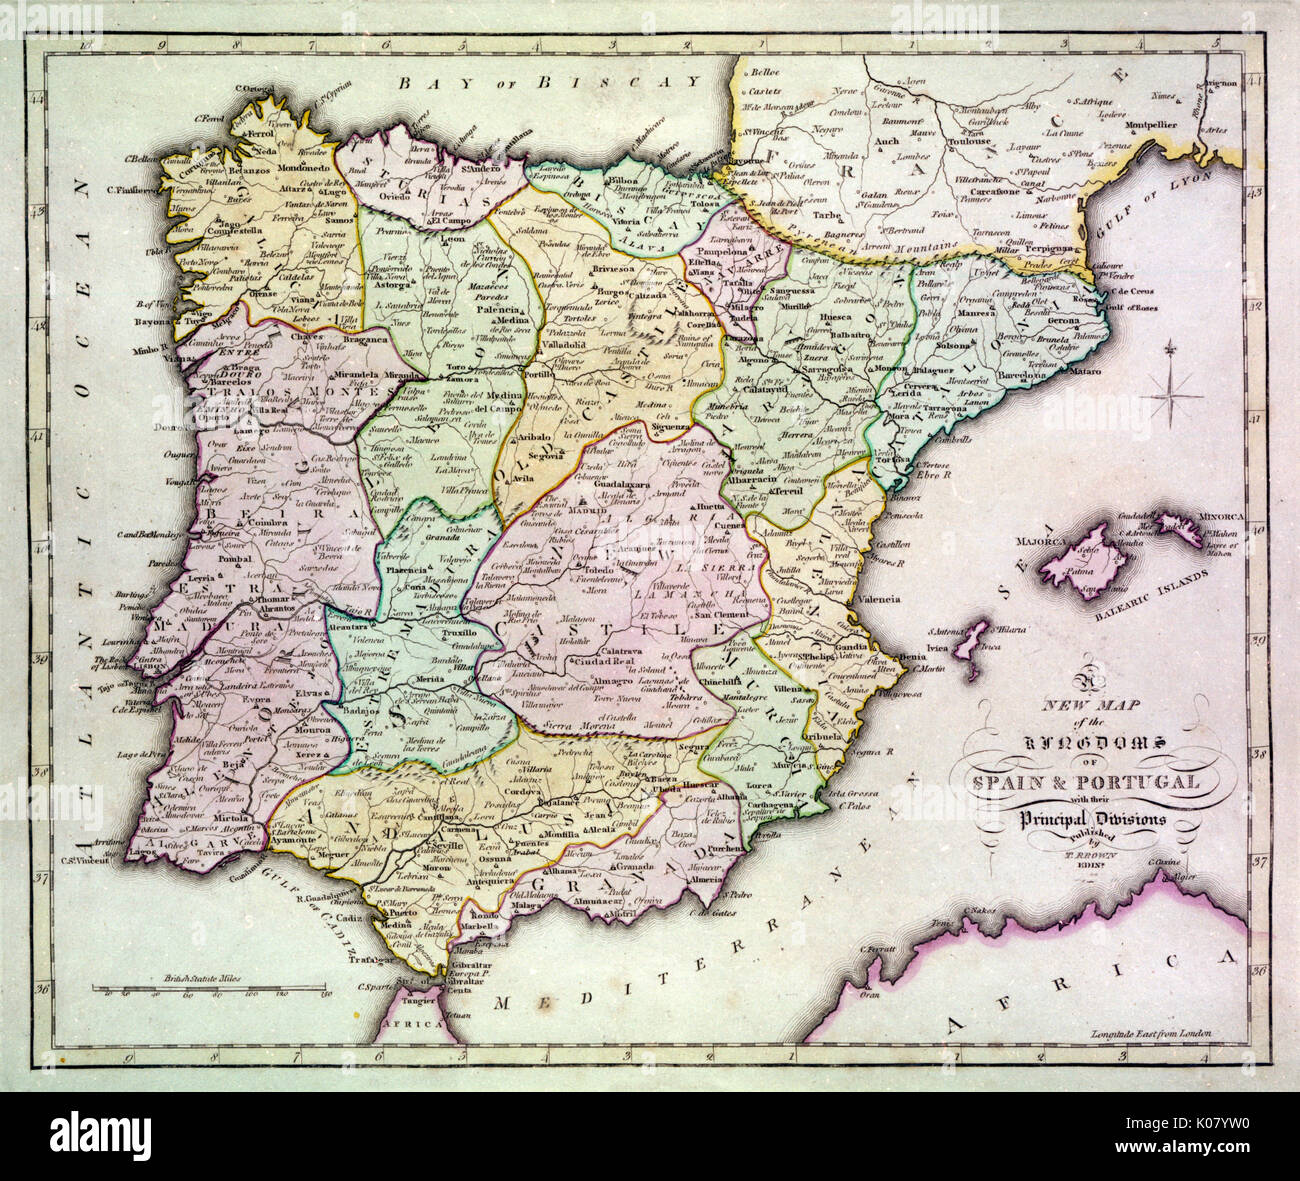 Map Of Spain And Portugal And France.Map Of Spain And Portugal With Part Of Southern France And Northern